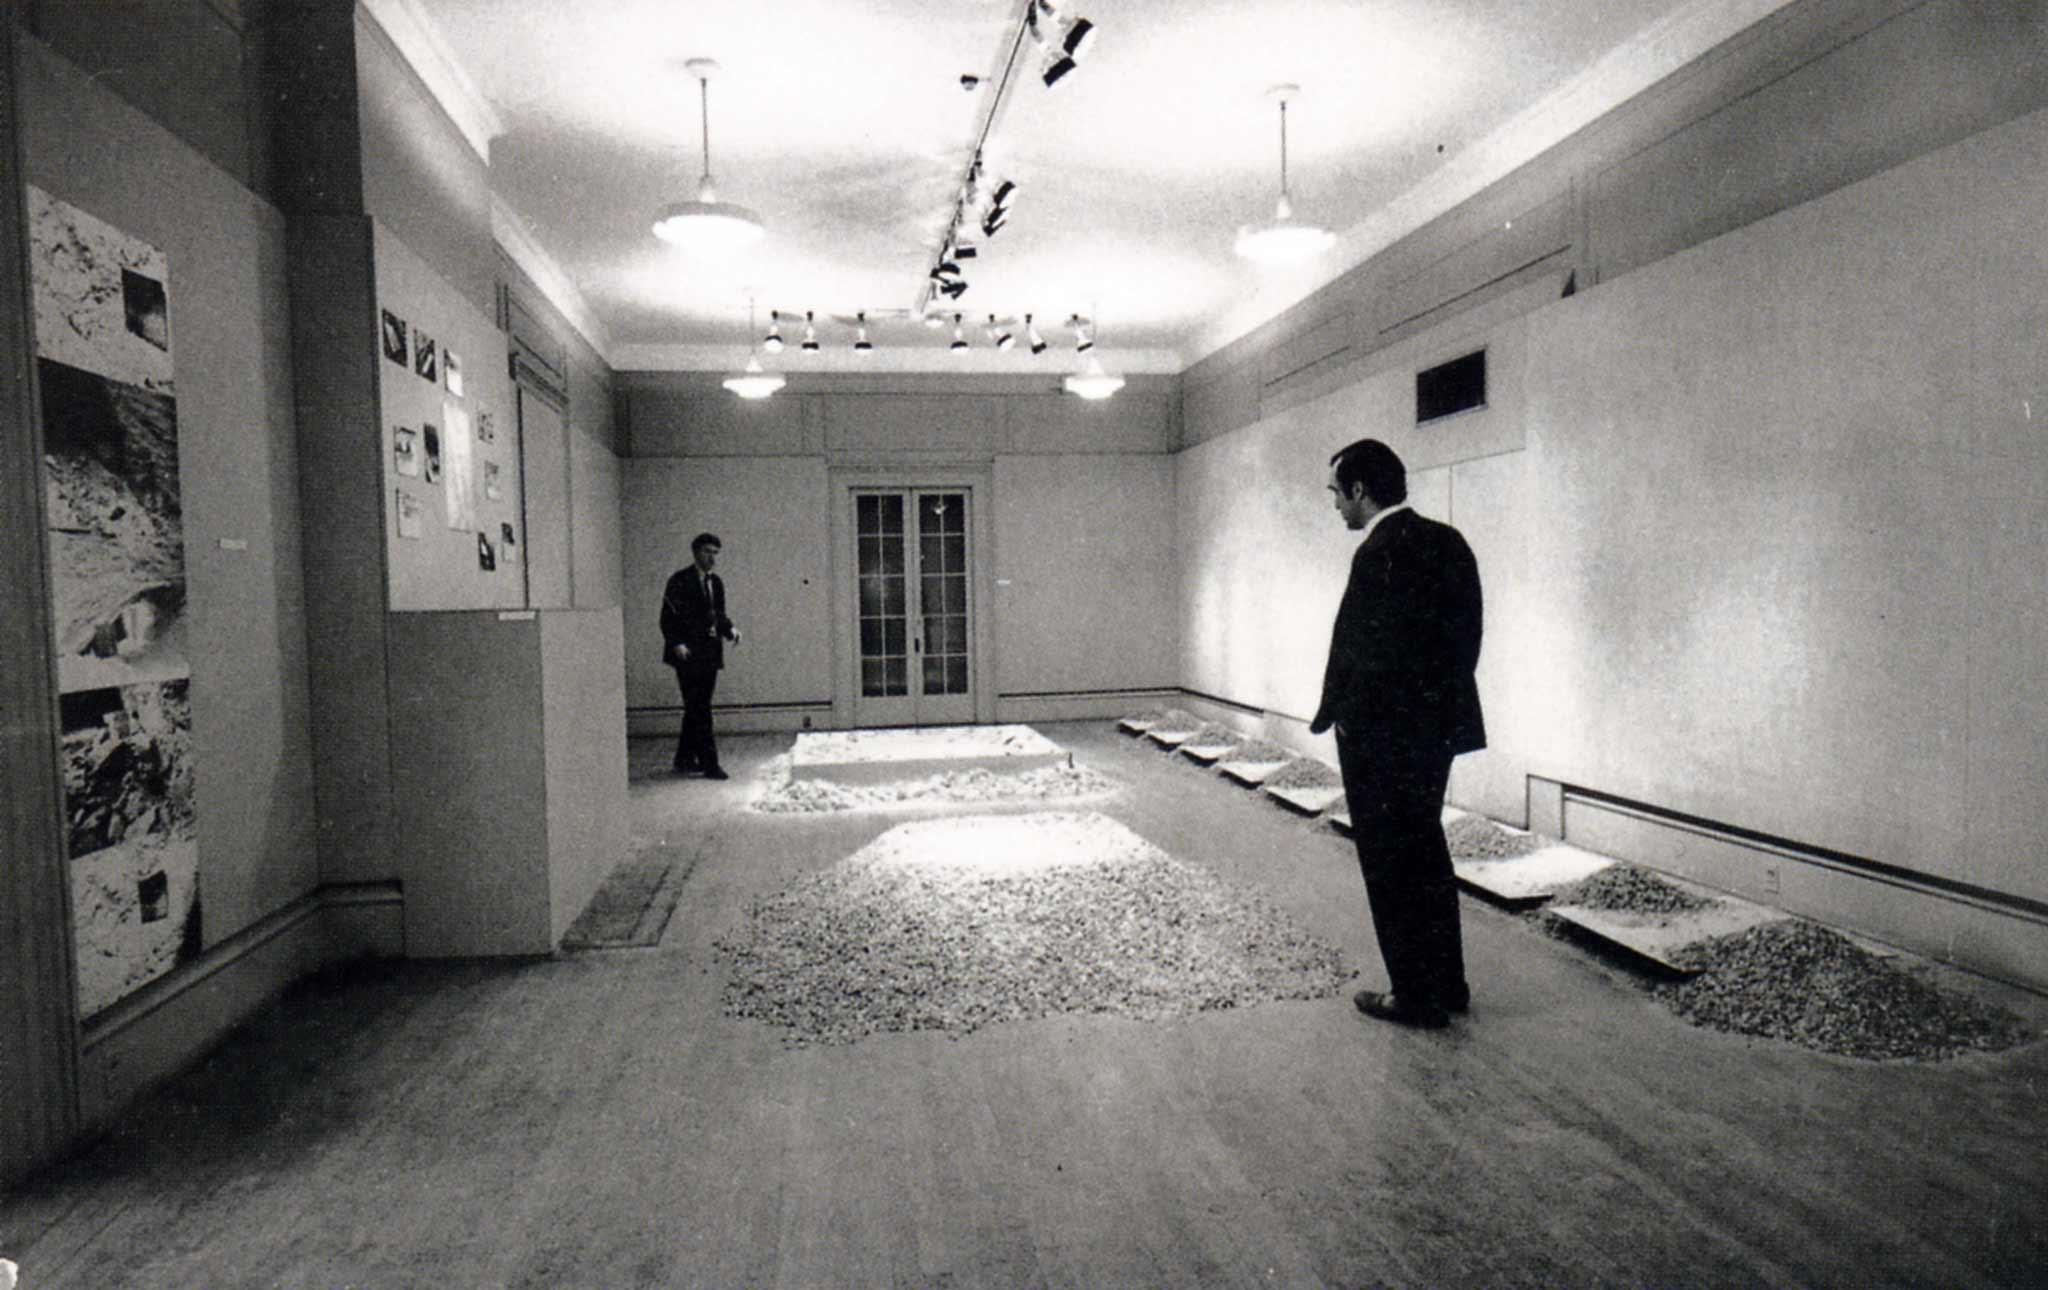 two figures in a room filled with sculptures made of salt and mirrors on the floor and photographs on the wall, black and white